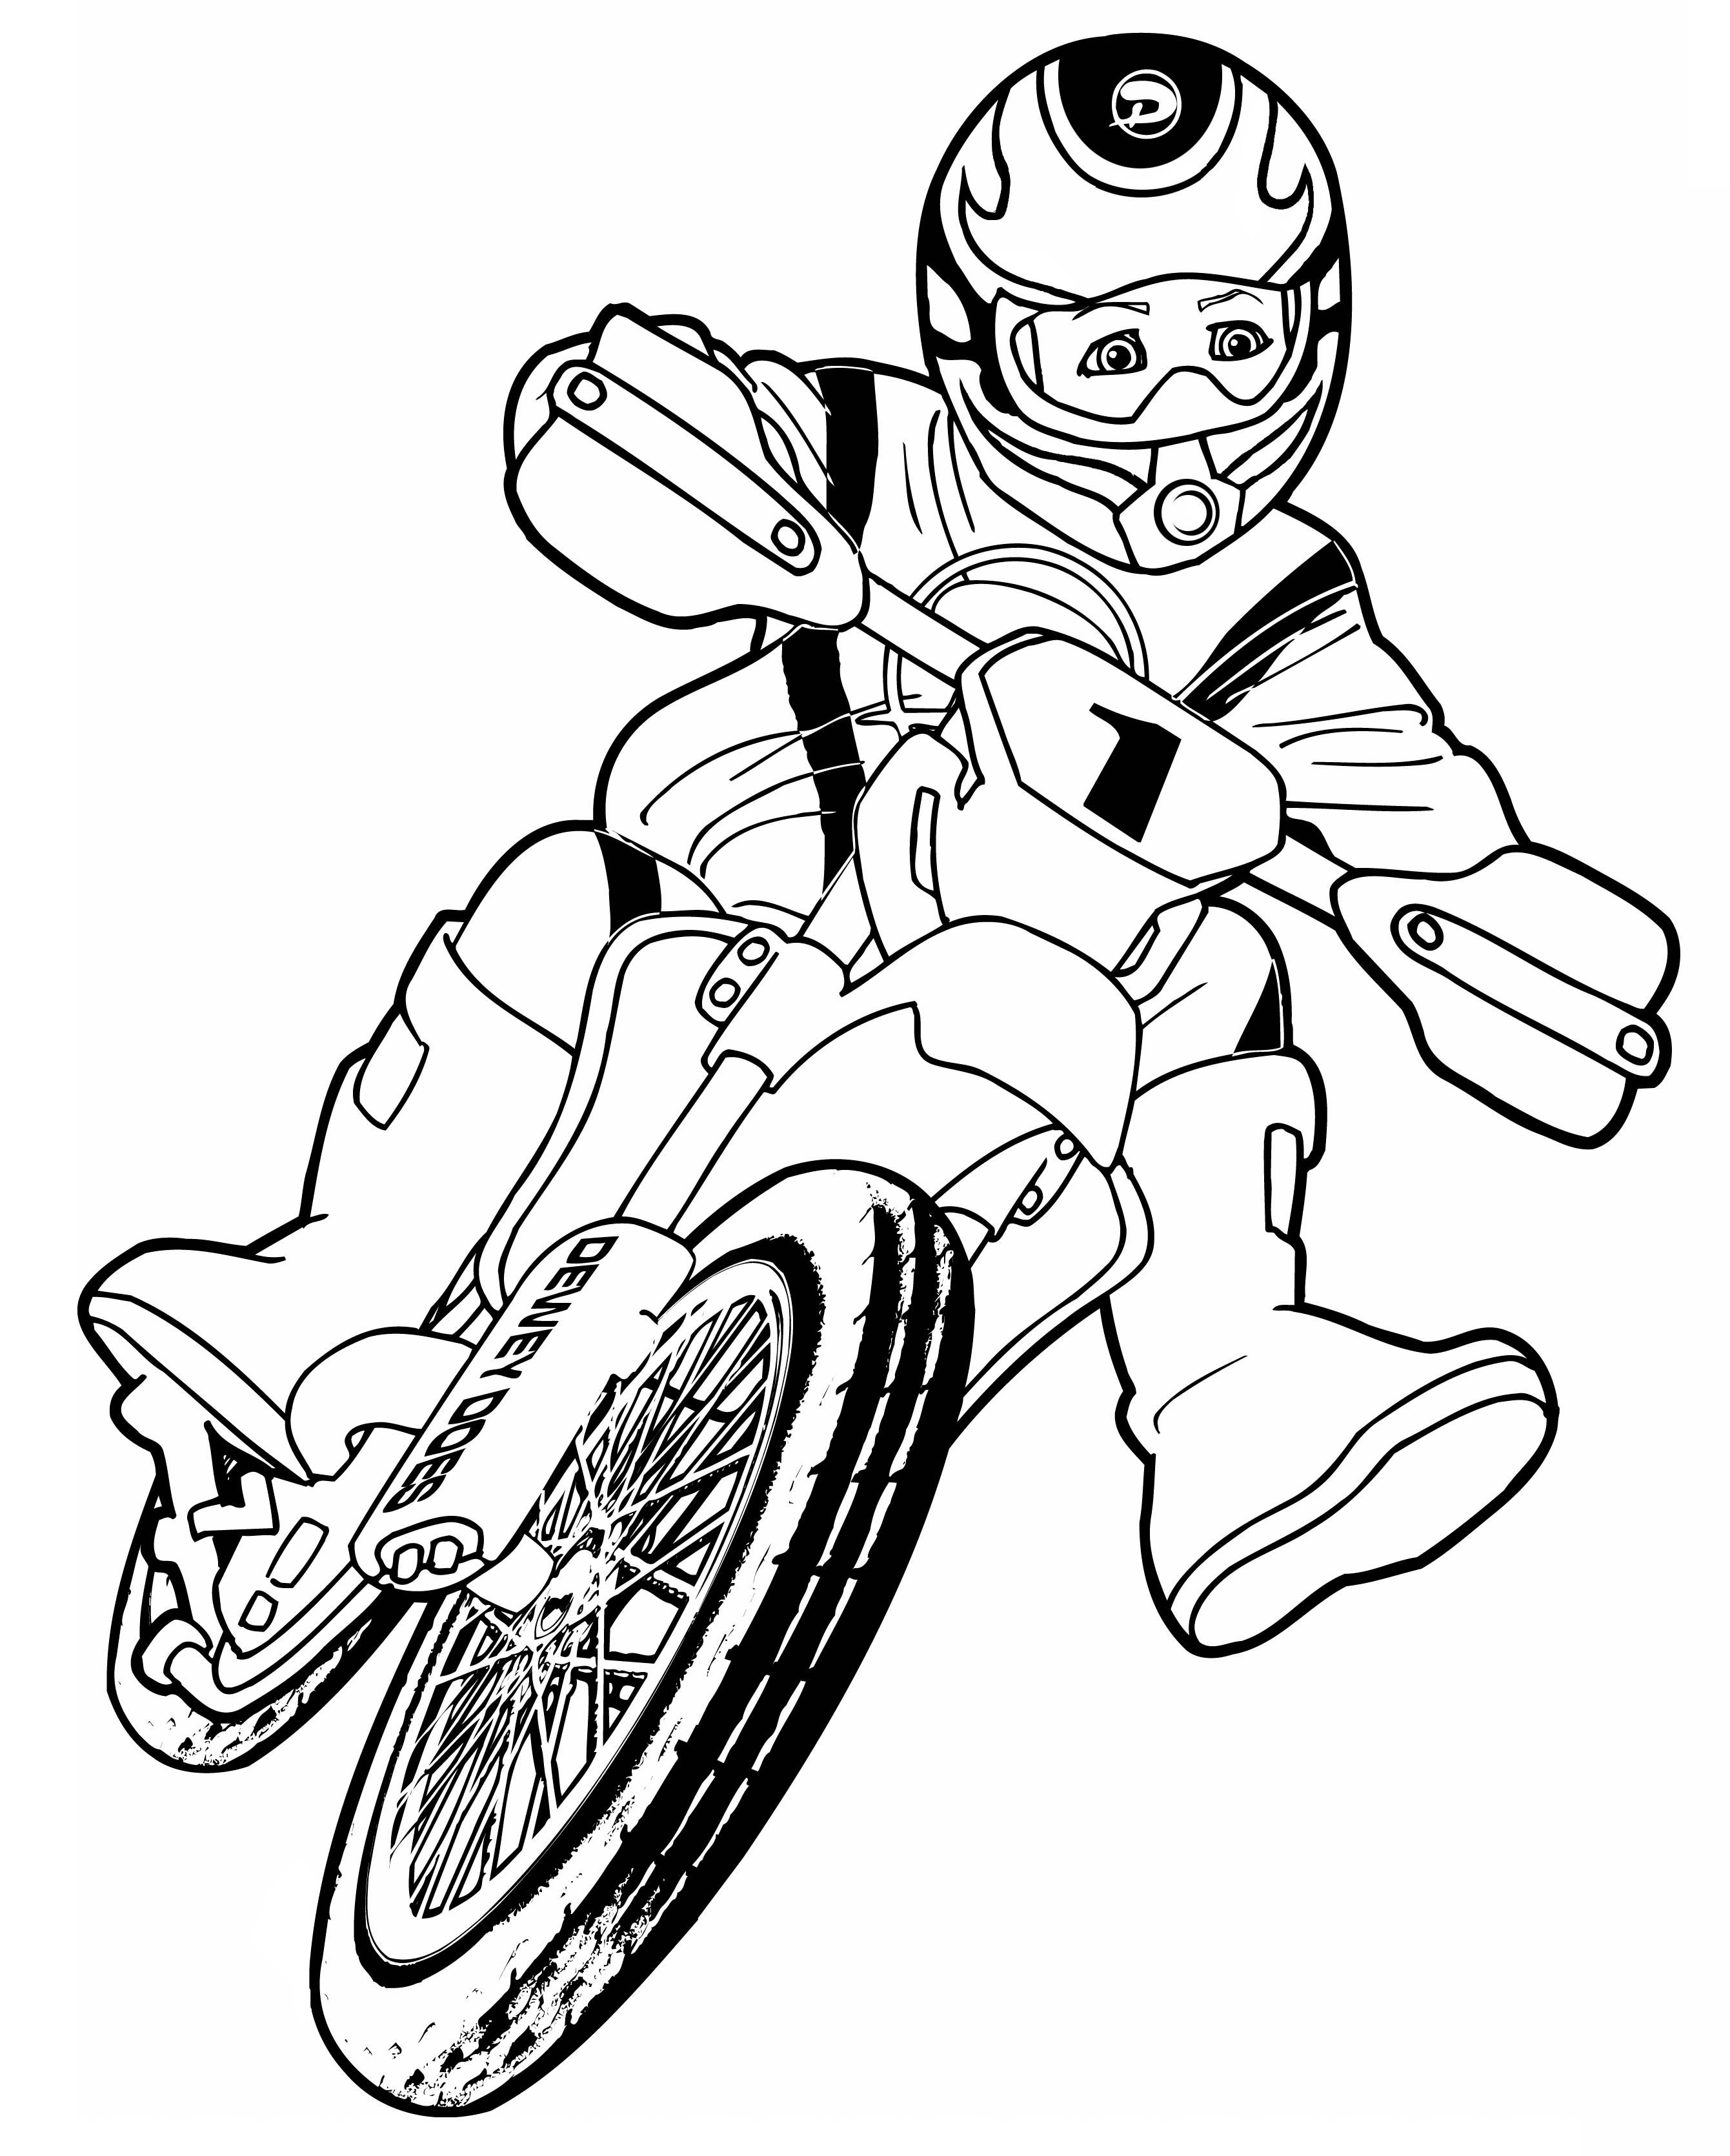 Birthday boy motorcycle helmets clipart graphic freeuse library Free Cartoon Dirt Bike Pictures Download Free Clip Art Free Clip ... graphic freeuse library